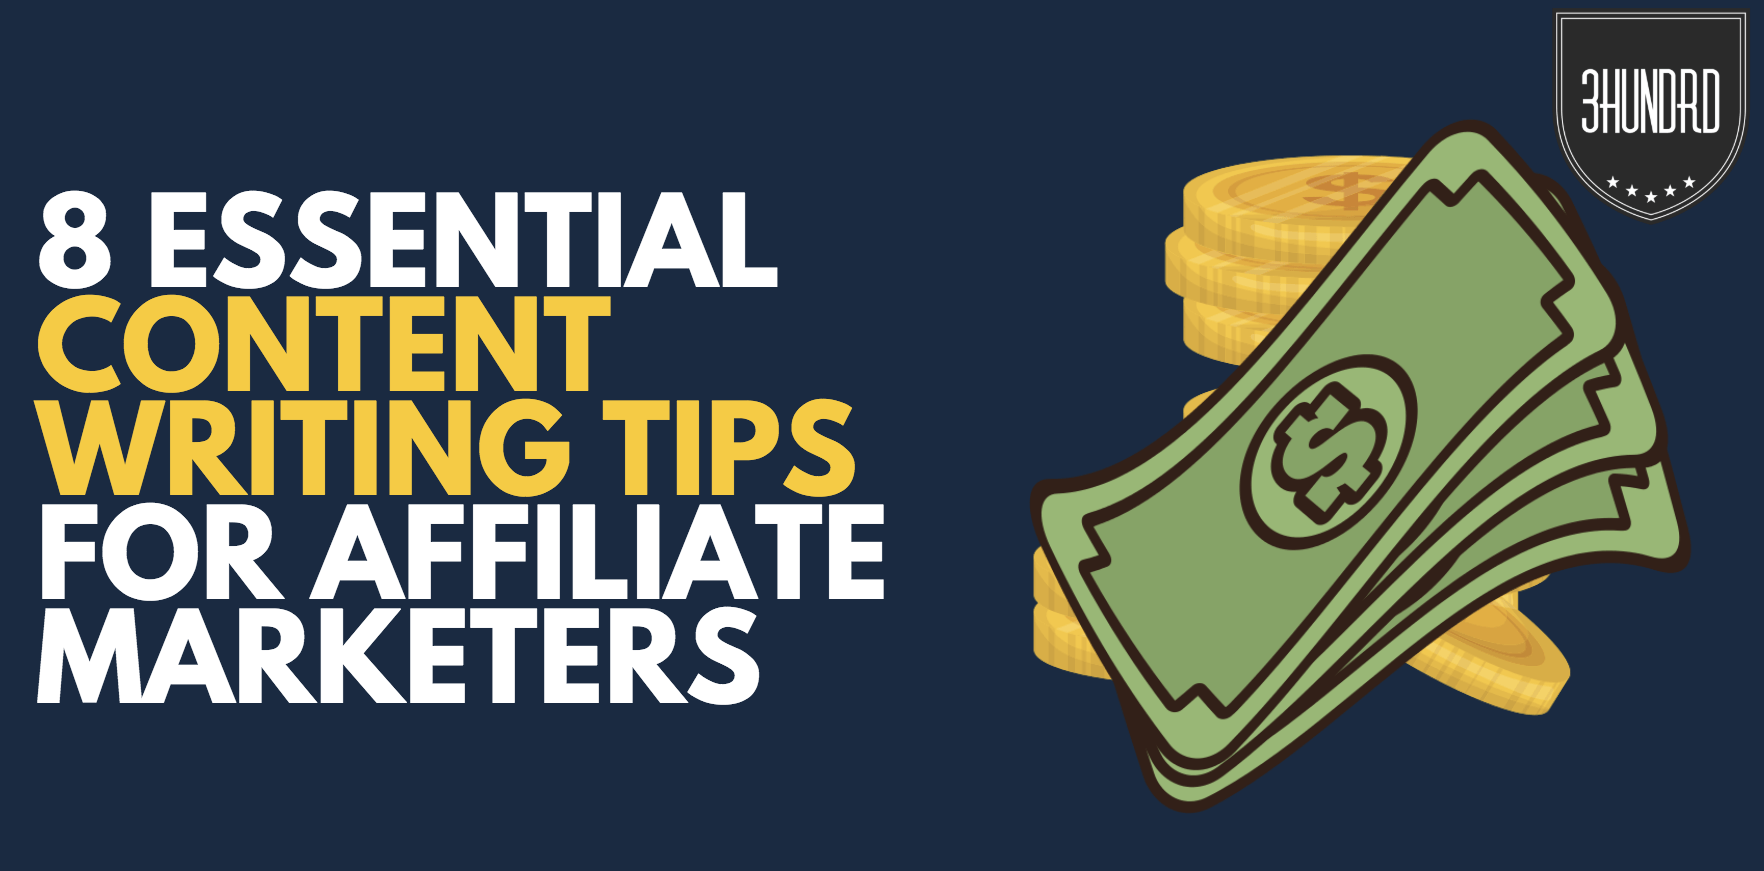 content writing tips for affiliate marketers